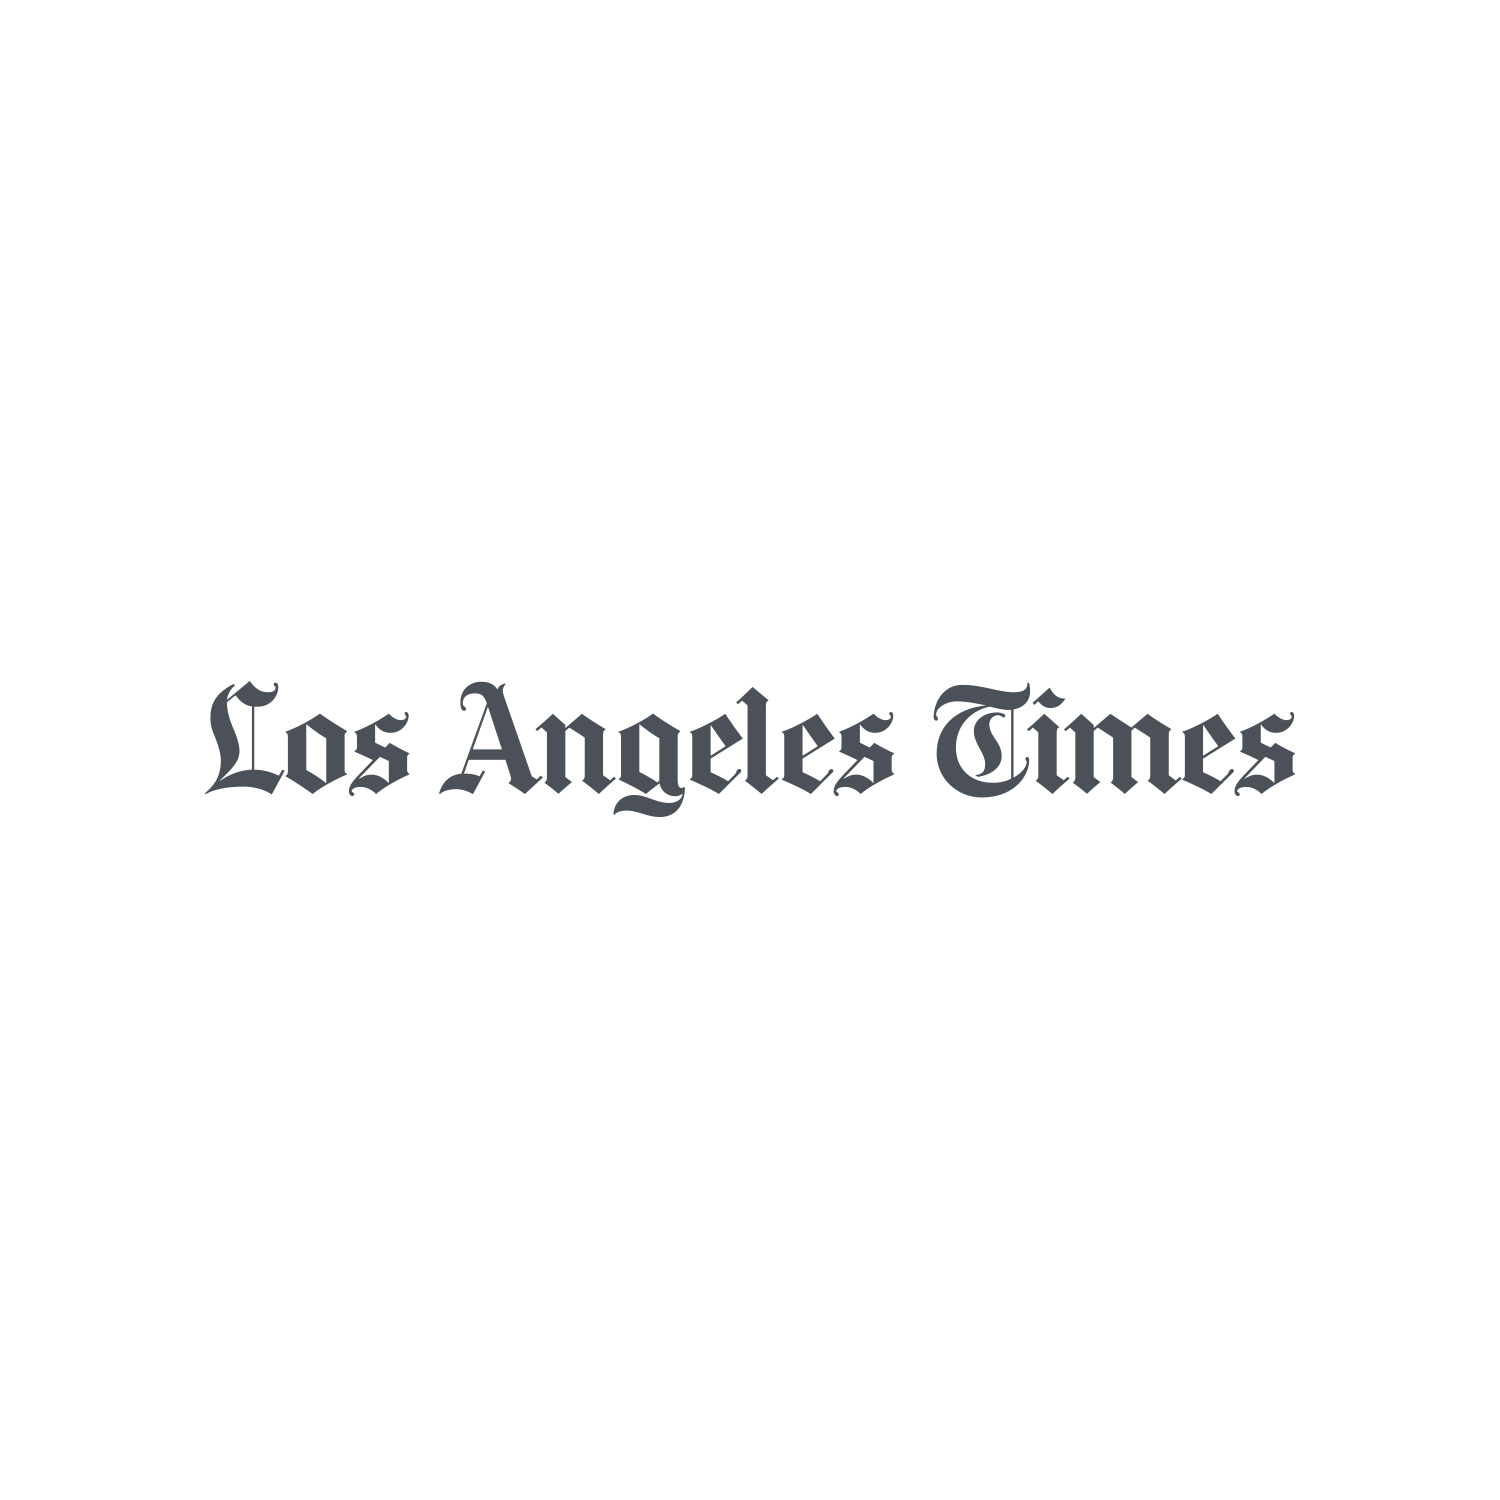 Los Angeles Times, 14 June 2016   View Article